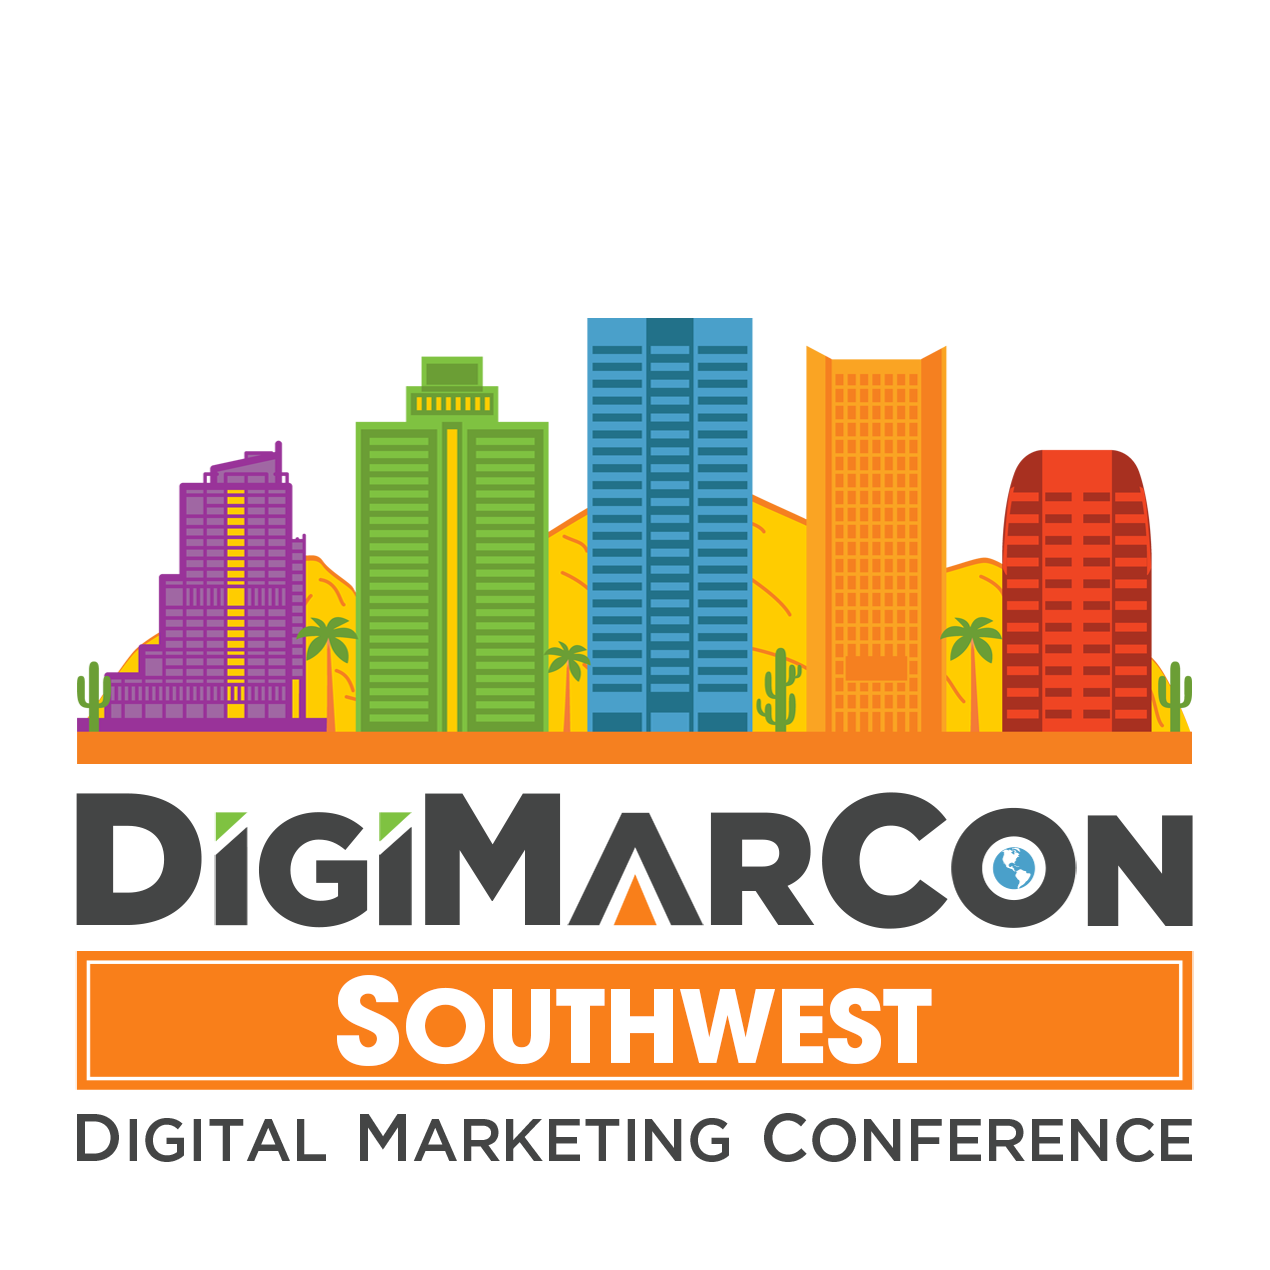 DigiMarCon Southwest 2022 – Digital Marketing, Media and Advertising Conference & Exhibition